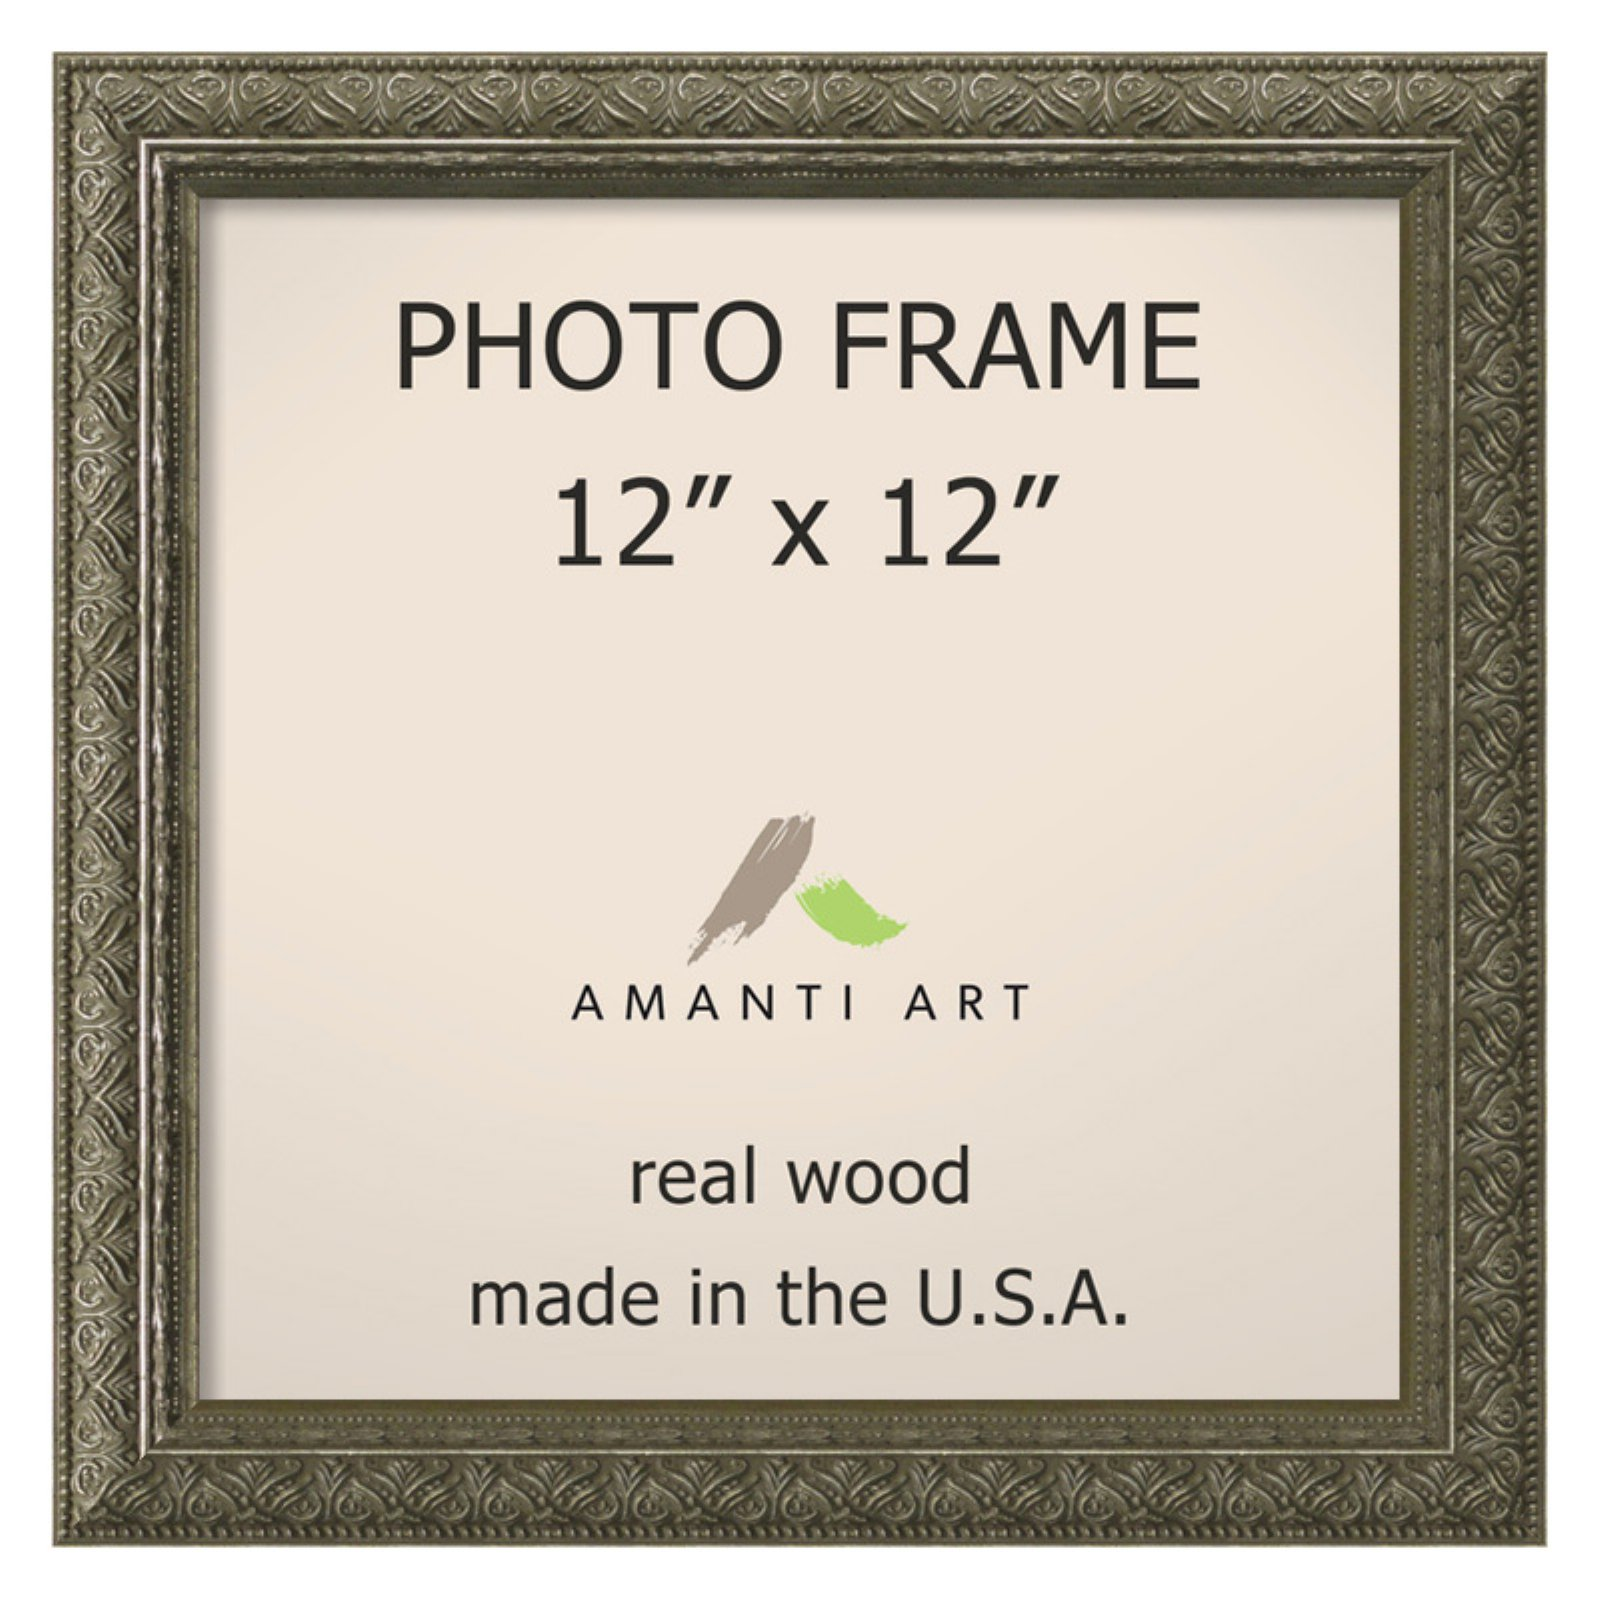 J And S Framing Barcelona Pewter Photo Frame Picture Frame Sizes Photo Frame Picture Frames